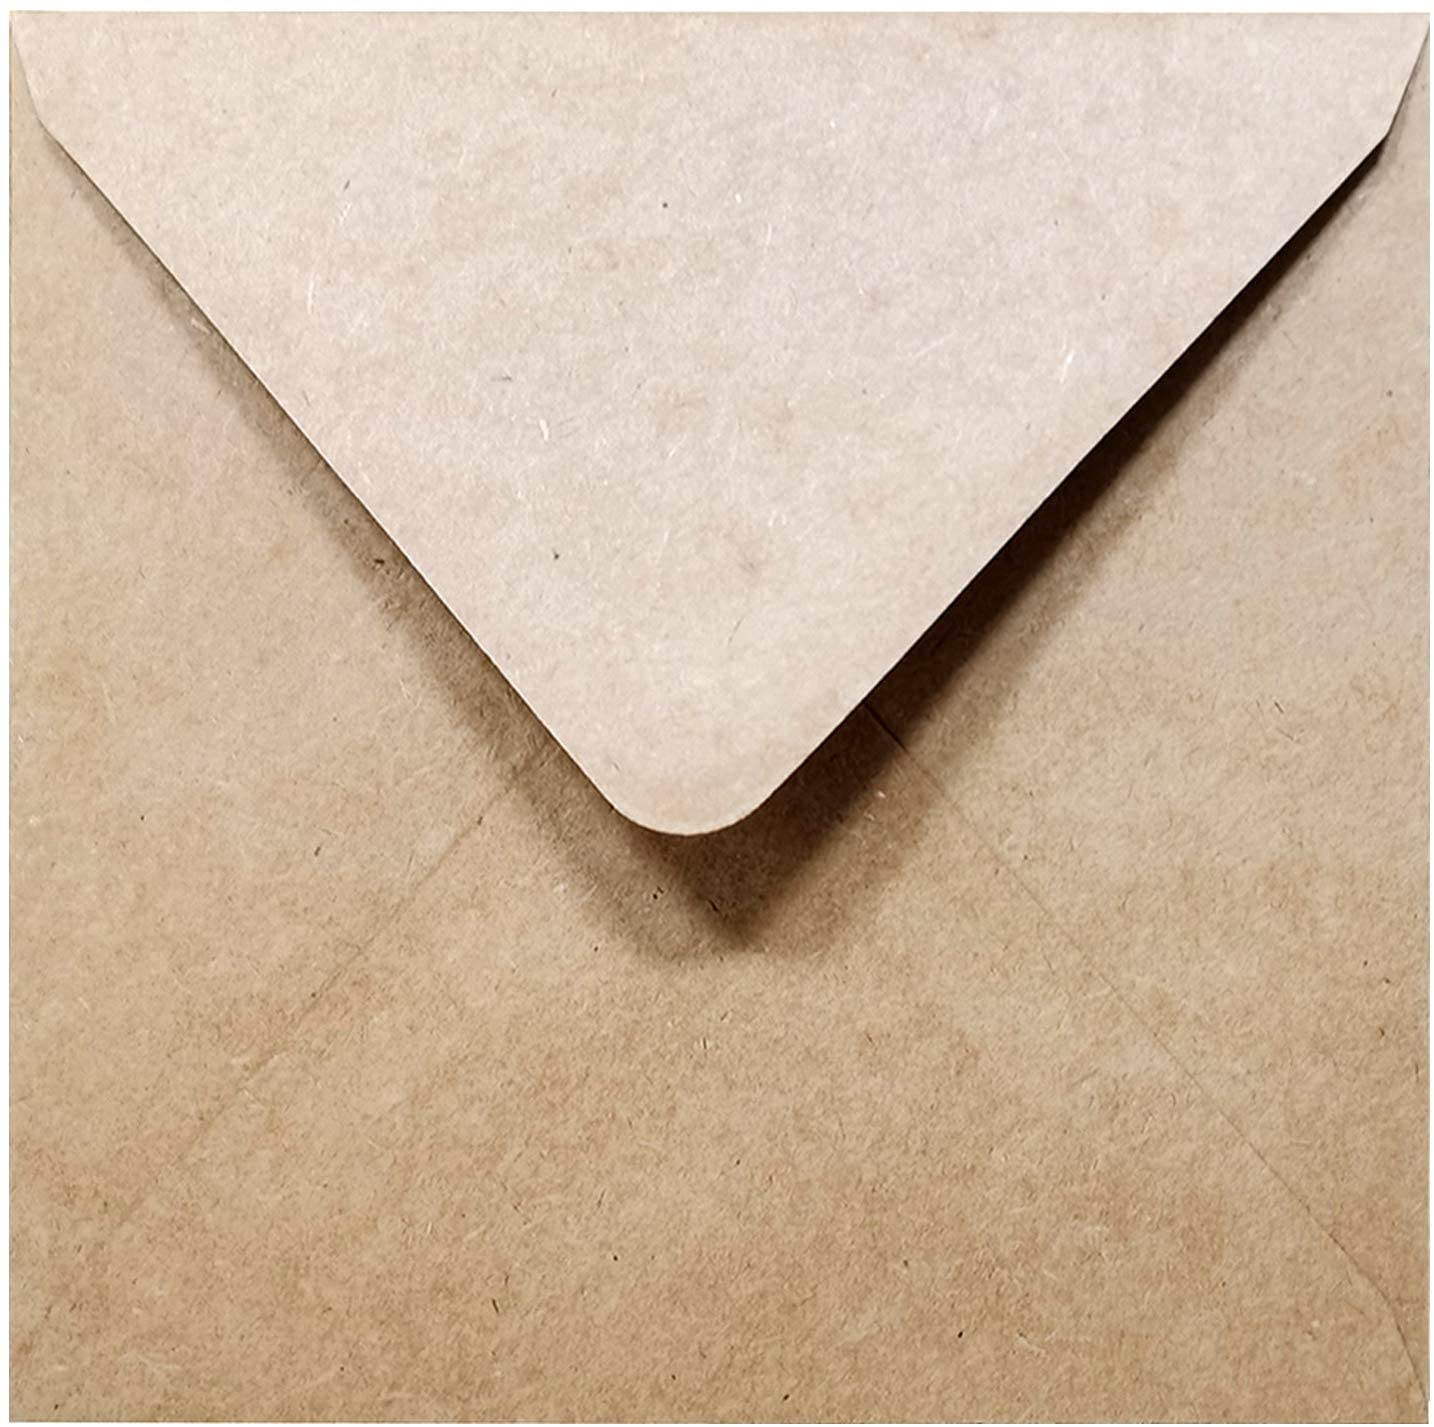 5-1/2 x 5-1/2 Square Kraft Envelopes Flapflop (100 Pcs) - Best for Thank You Notes, Greeting Cards, Weddings, Invitation | 100lb. Paper by Secret Life